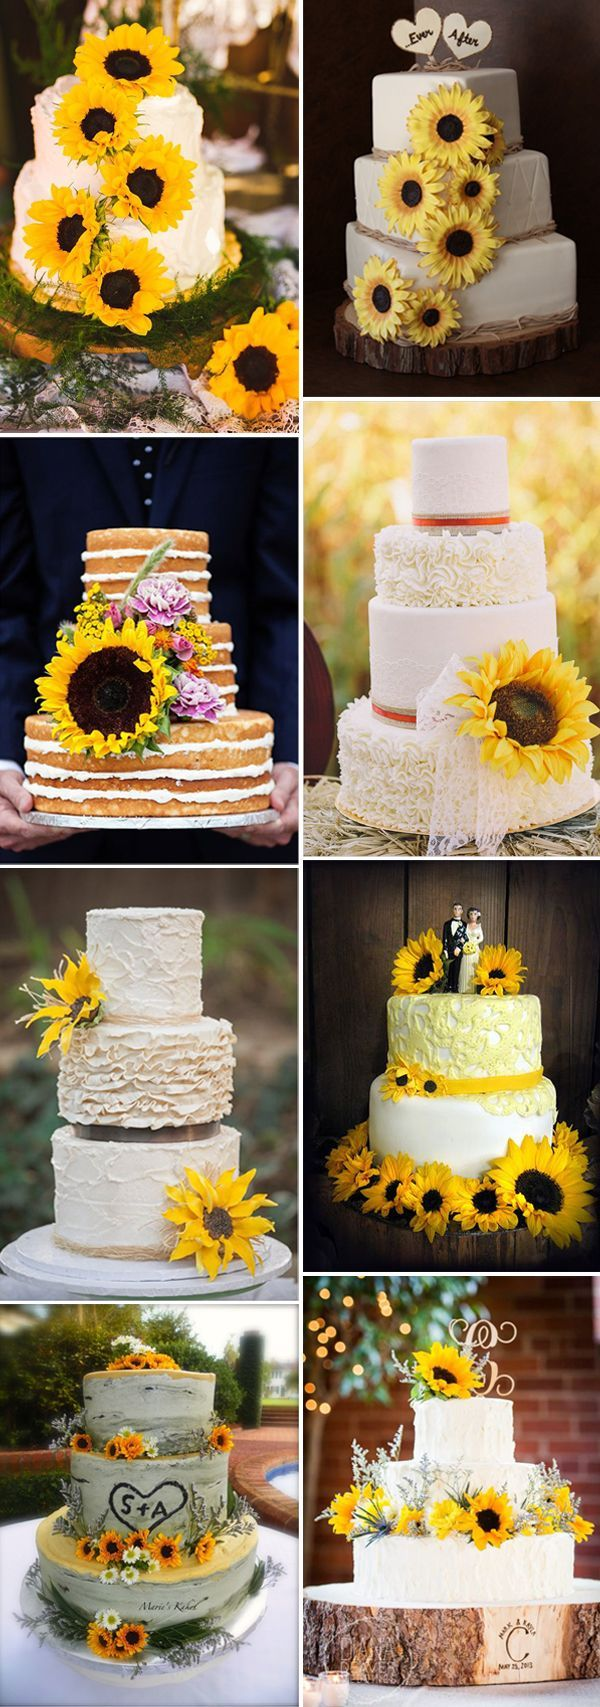 Sunflower wedding cake Ideas for fall weddings